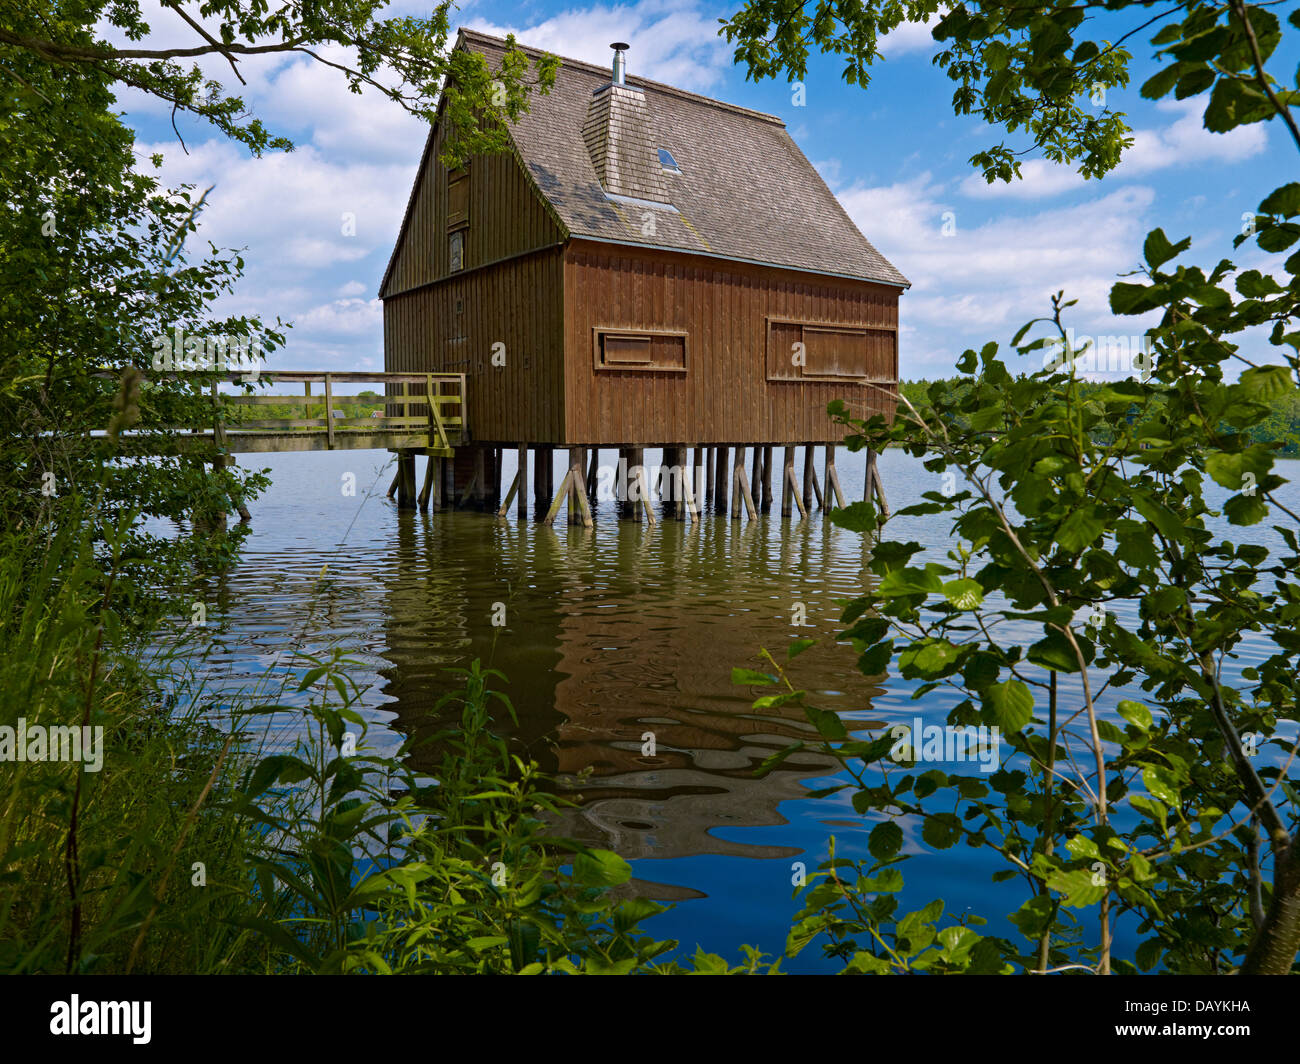 Stilt house in the Hausteich, Plothen ponds, Thuringia, Germany - Stock Image